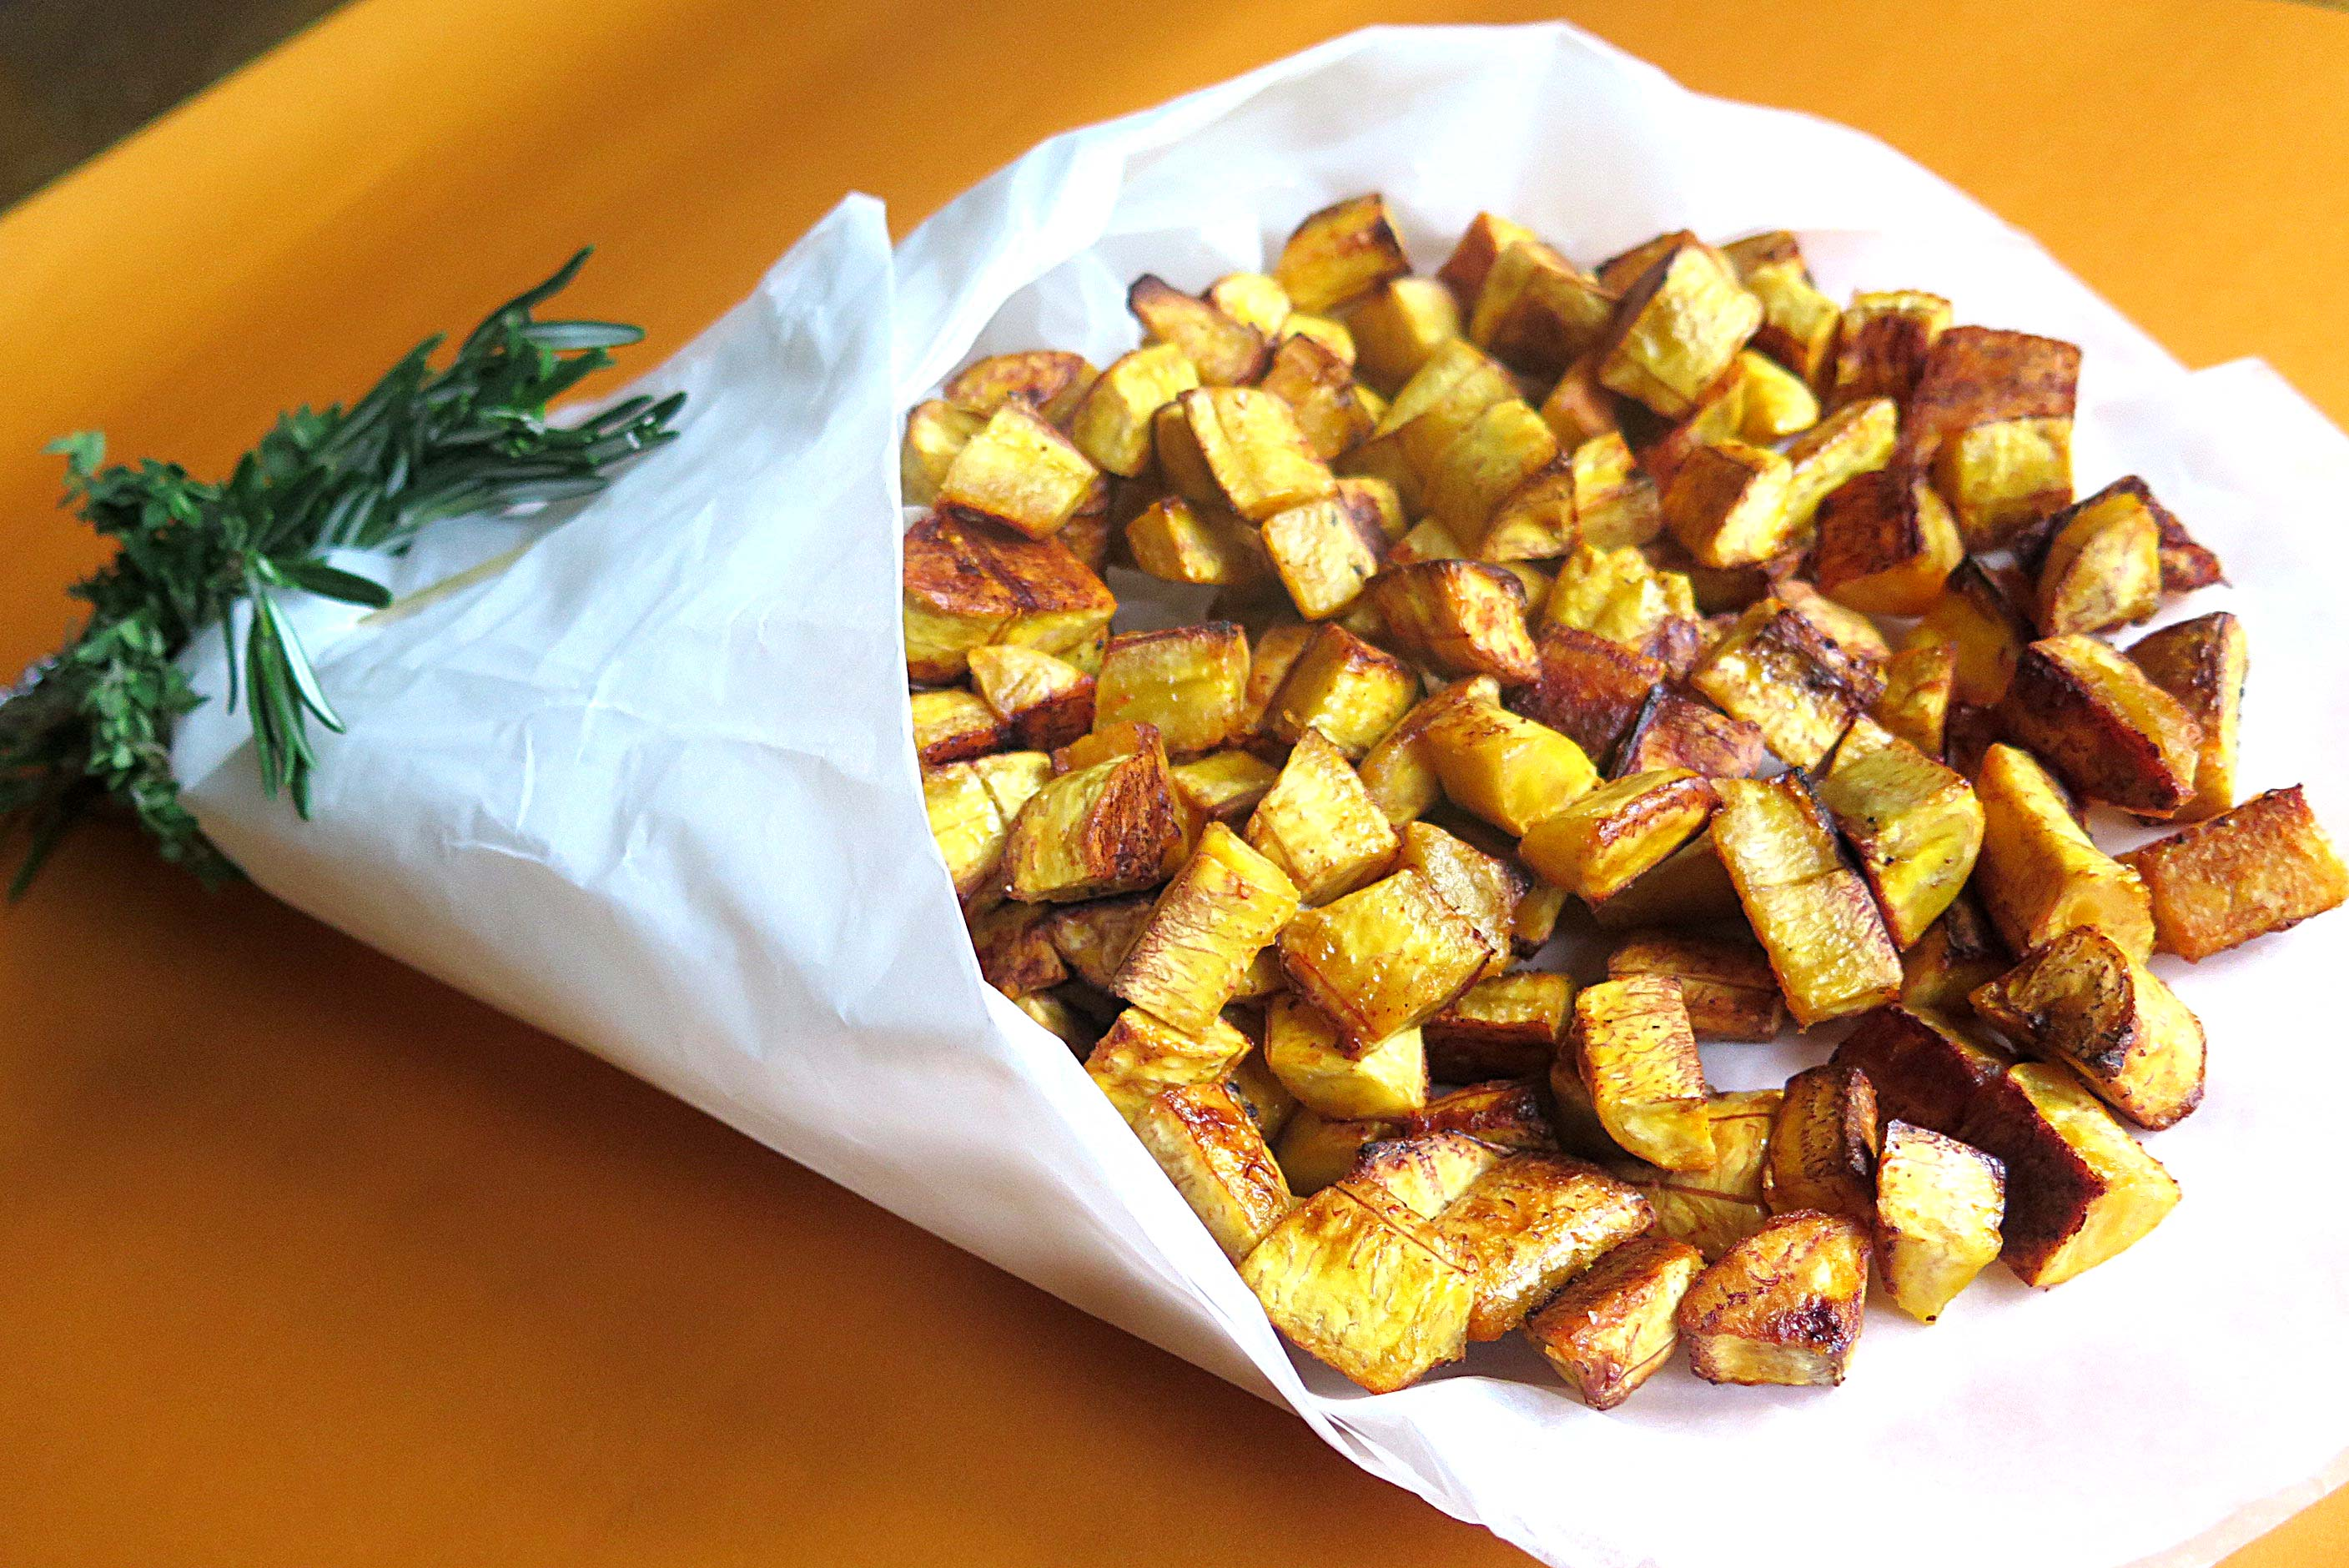 Kelewele bouquet ripe plantain spiced and baked